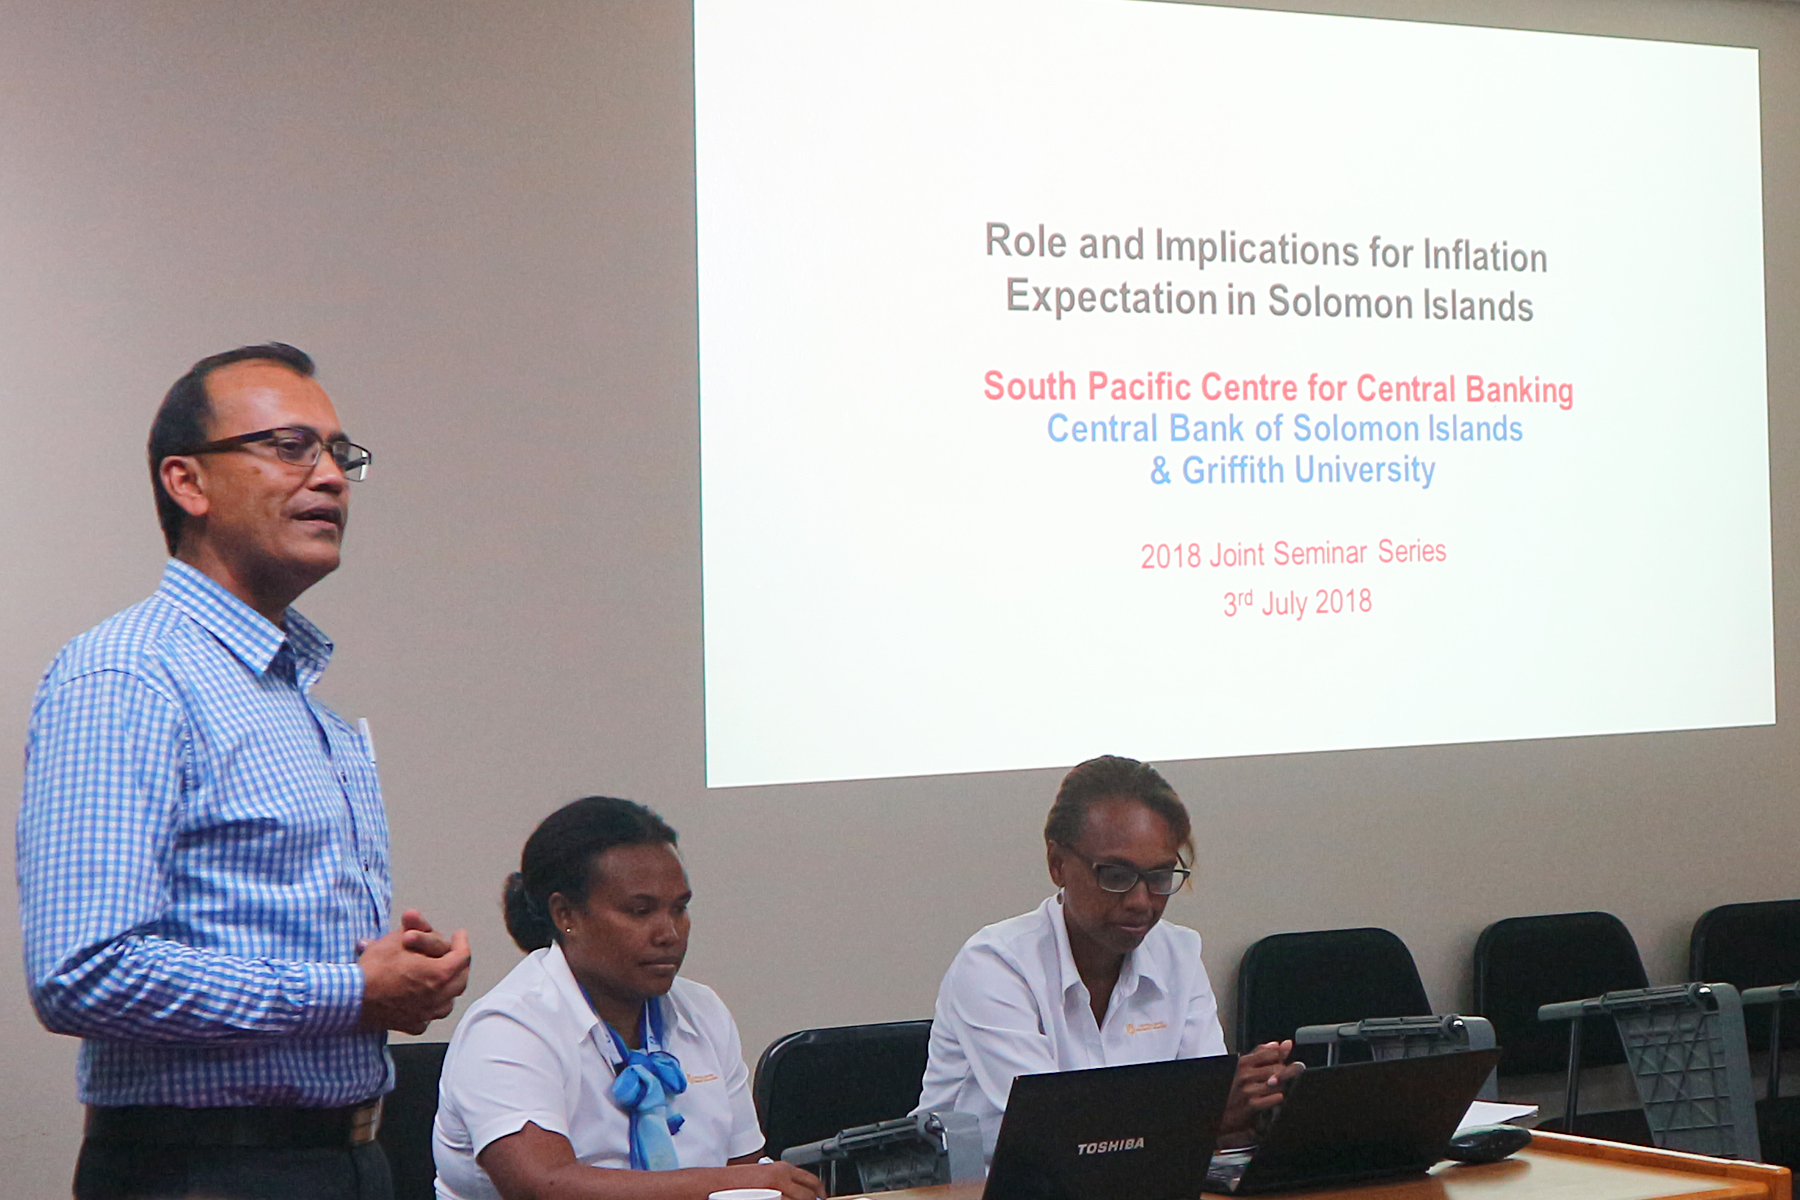 Head of Griffith Asia Institute's South Pacific Studies group, Dr Parmendra Sharma giving his remarks at the begining of the seminar